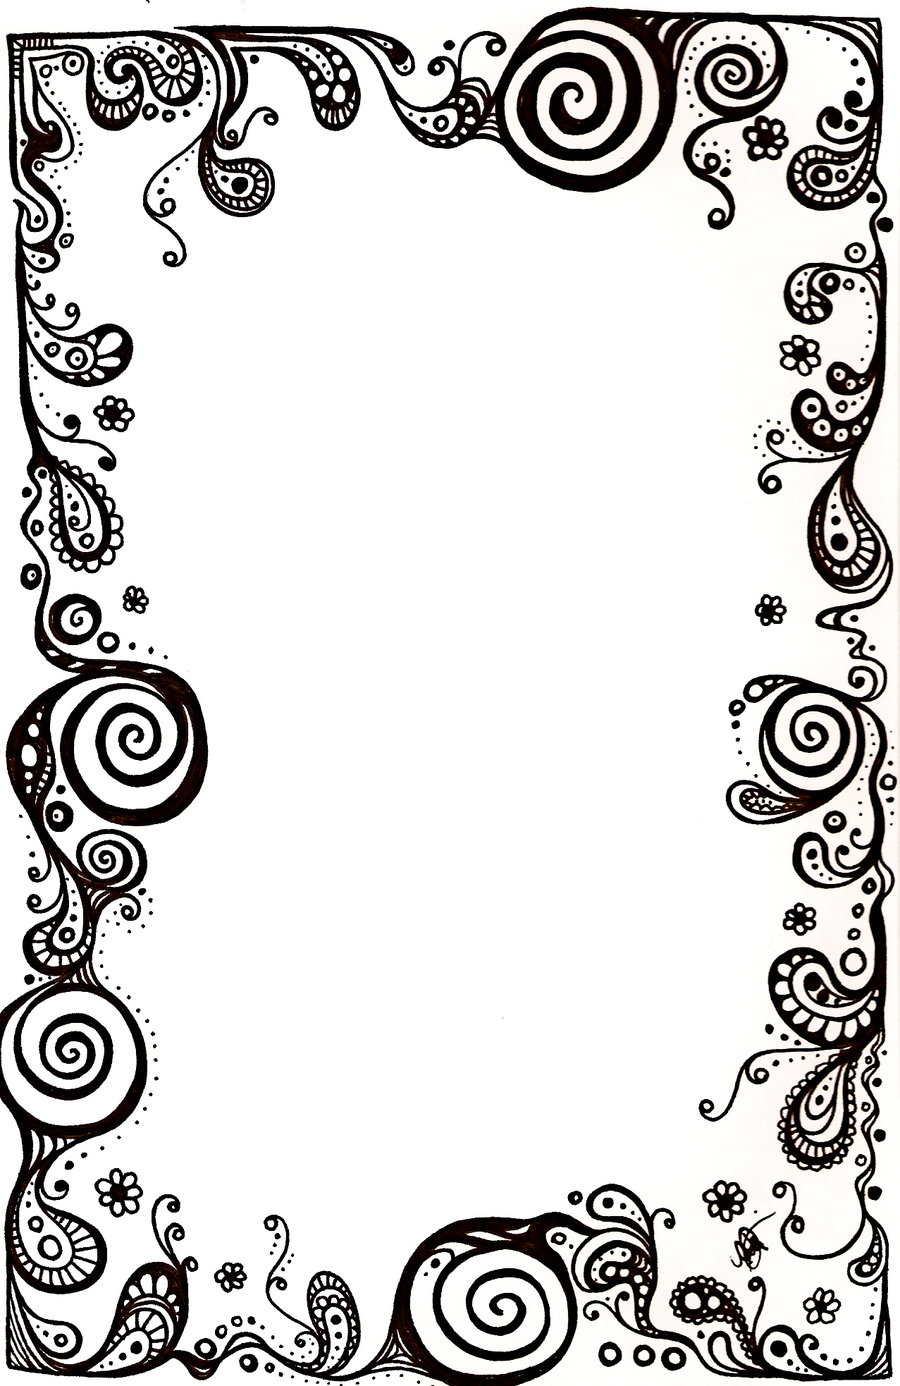 Free Paisley Border Png, Download Free Clip Art, Free Clip.